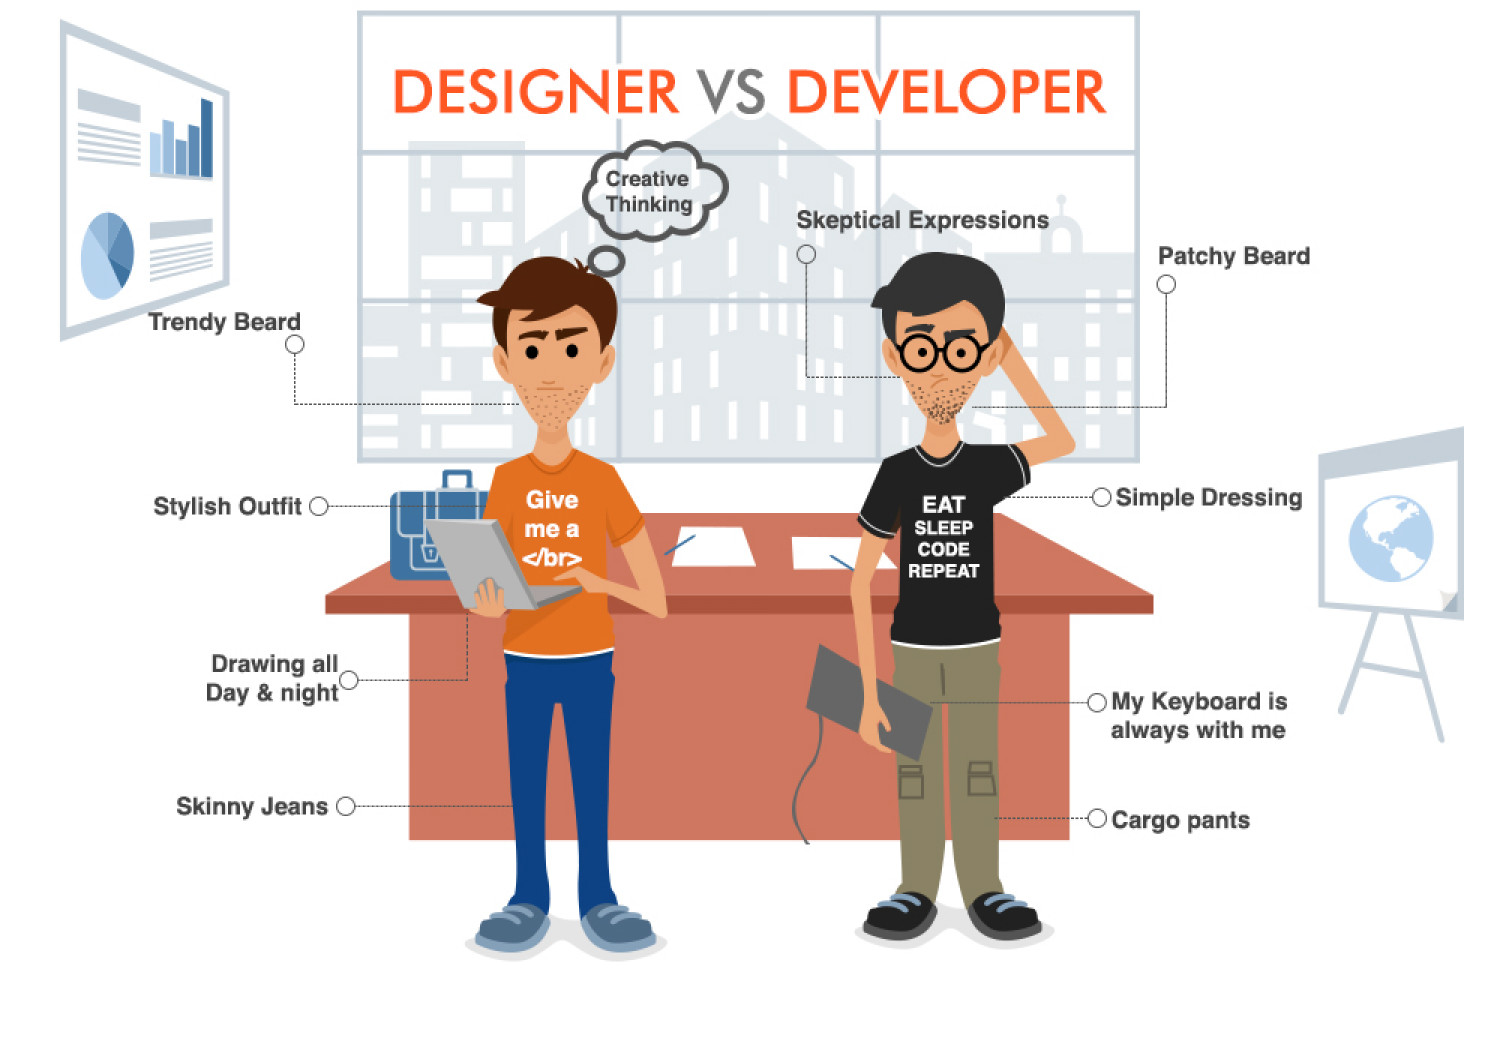 web-designer-vs-web-developer_5694ae9d661b5_w1500.jpg